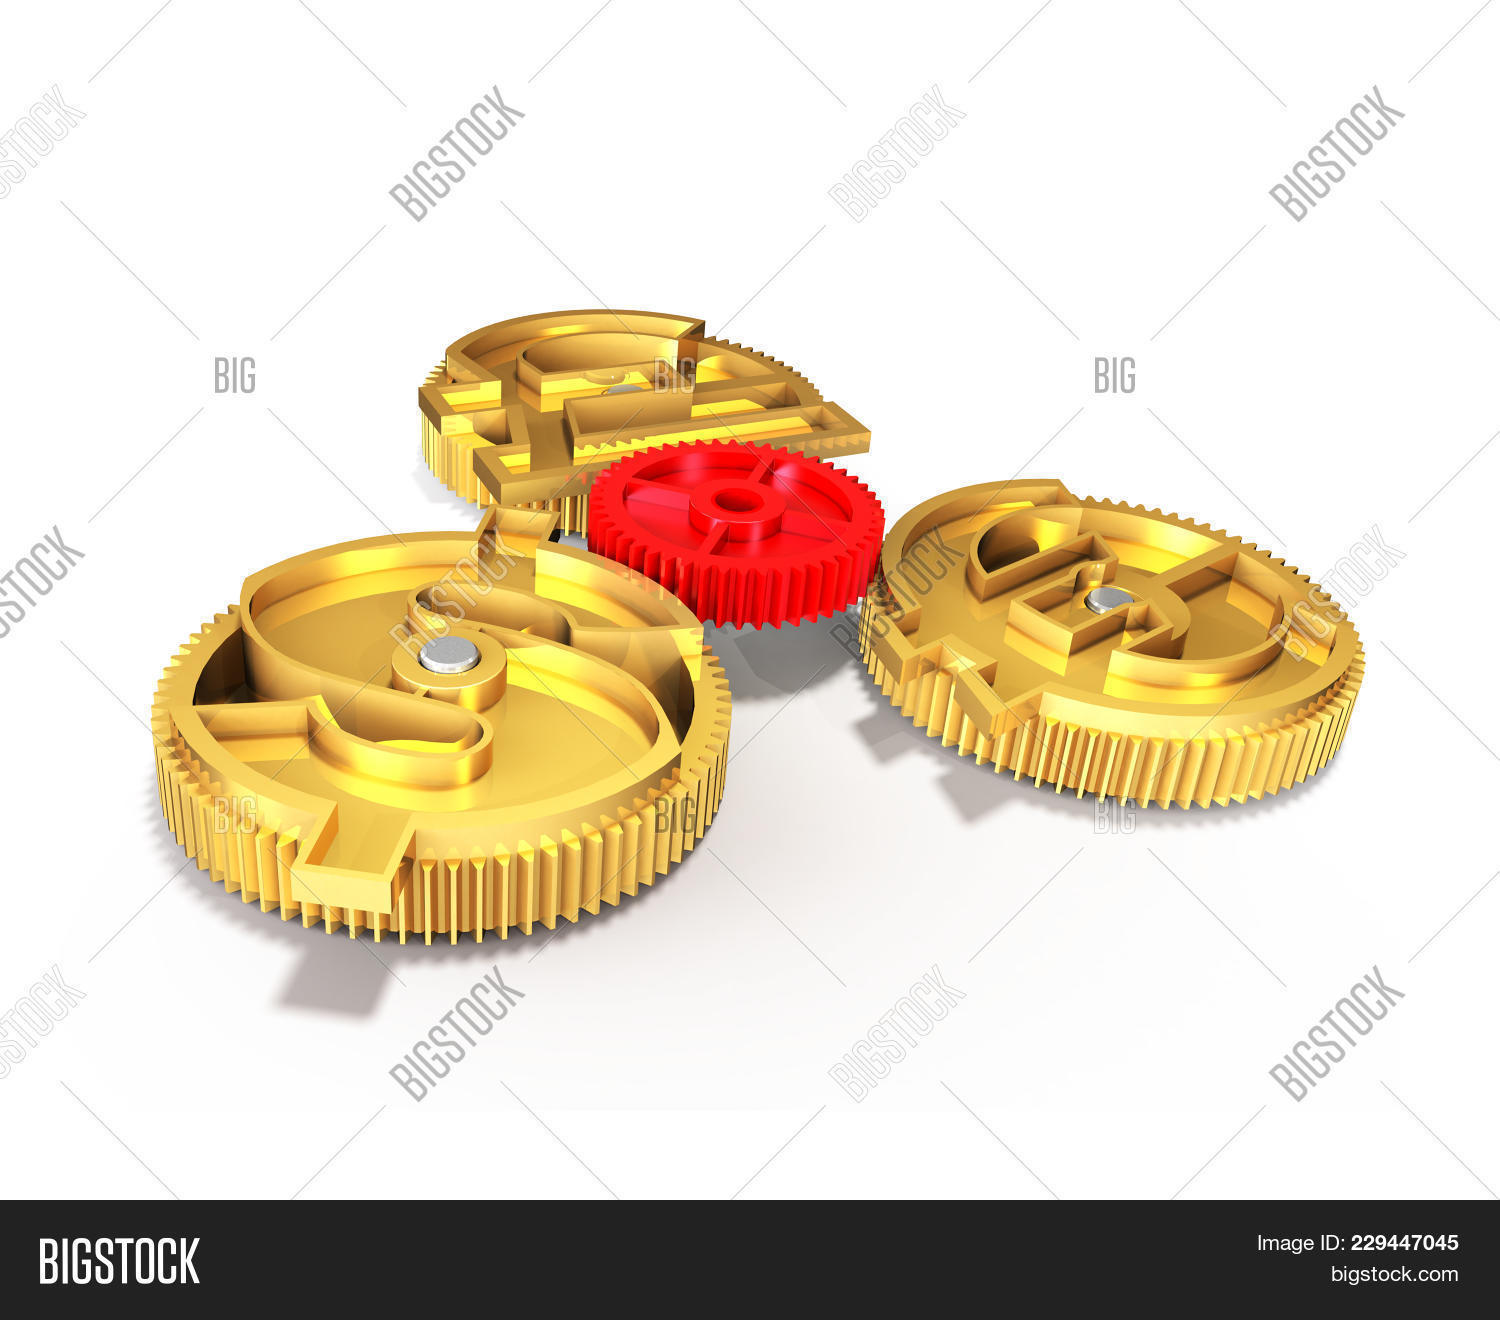 Gears Gold Dollar Sign Pound Euro Image Photo Bigstock